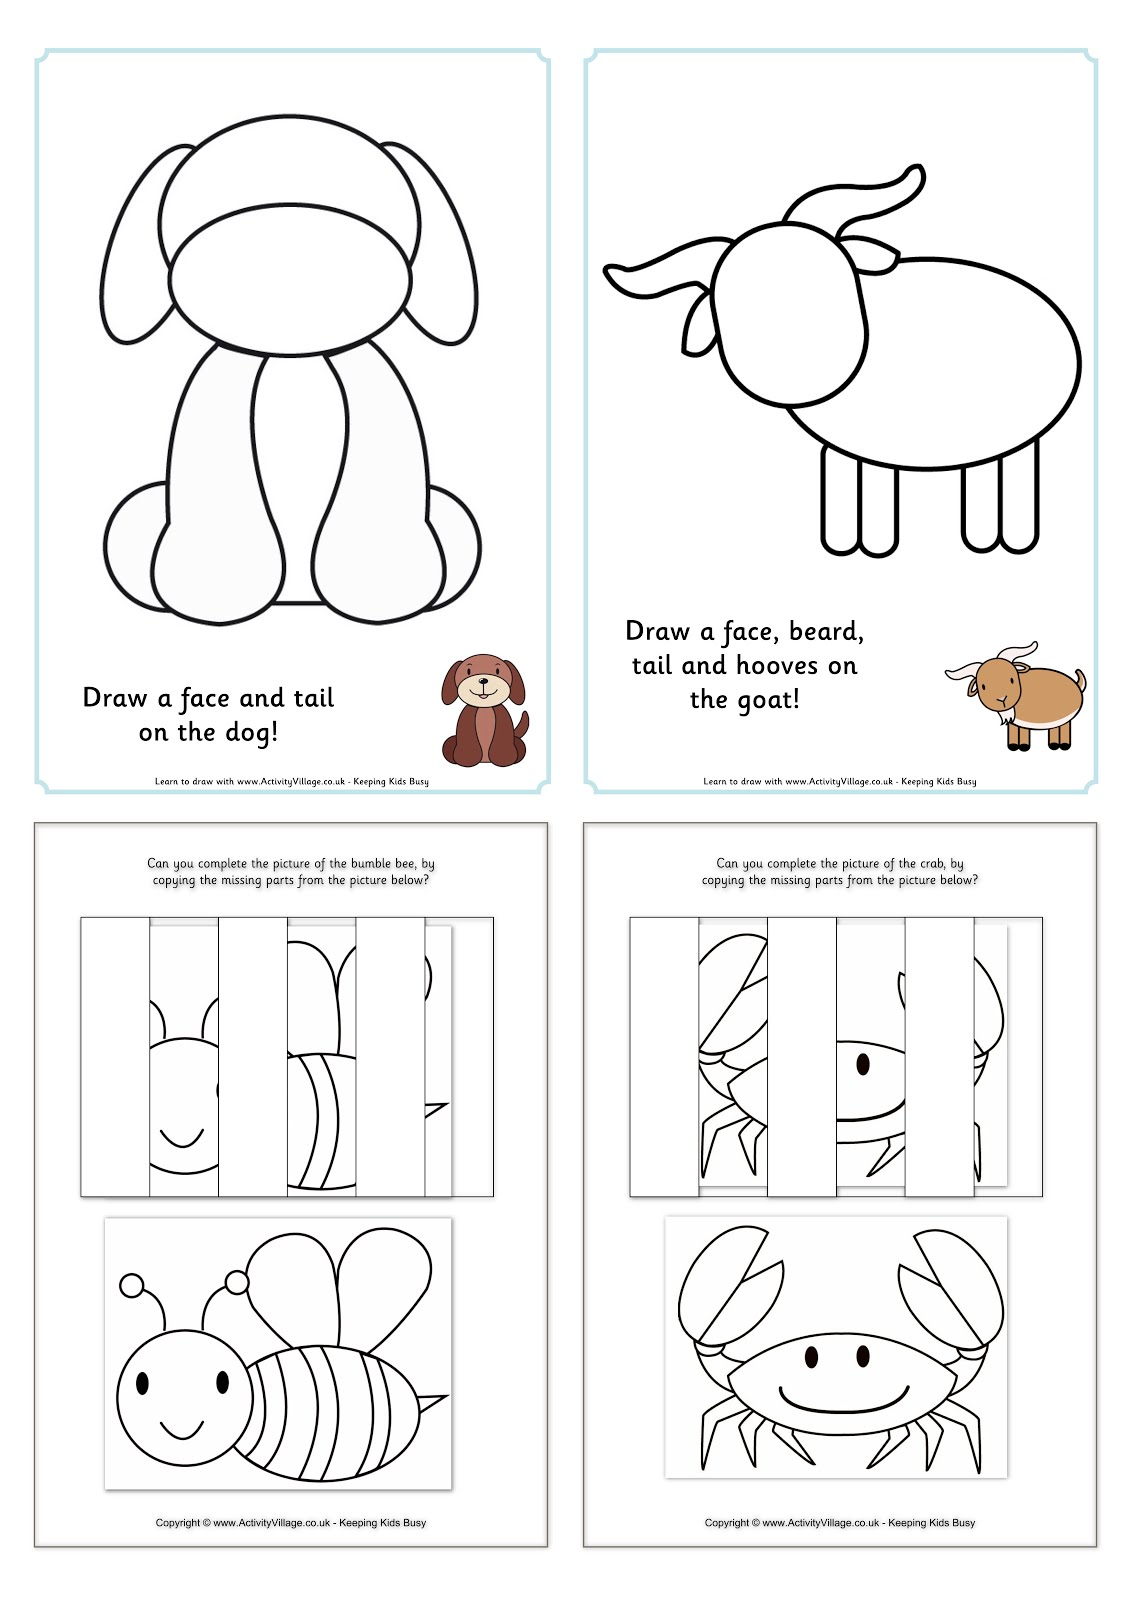 Workbooks visual discrimination worksheets : Visual Learning for Life: April 2016